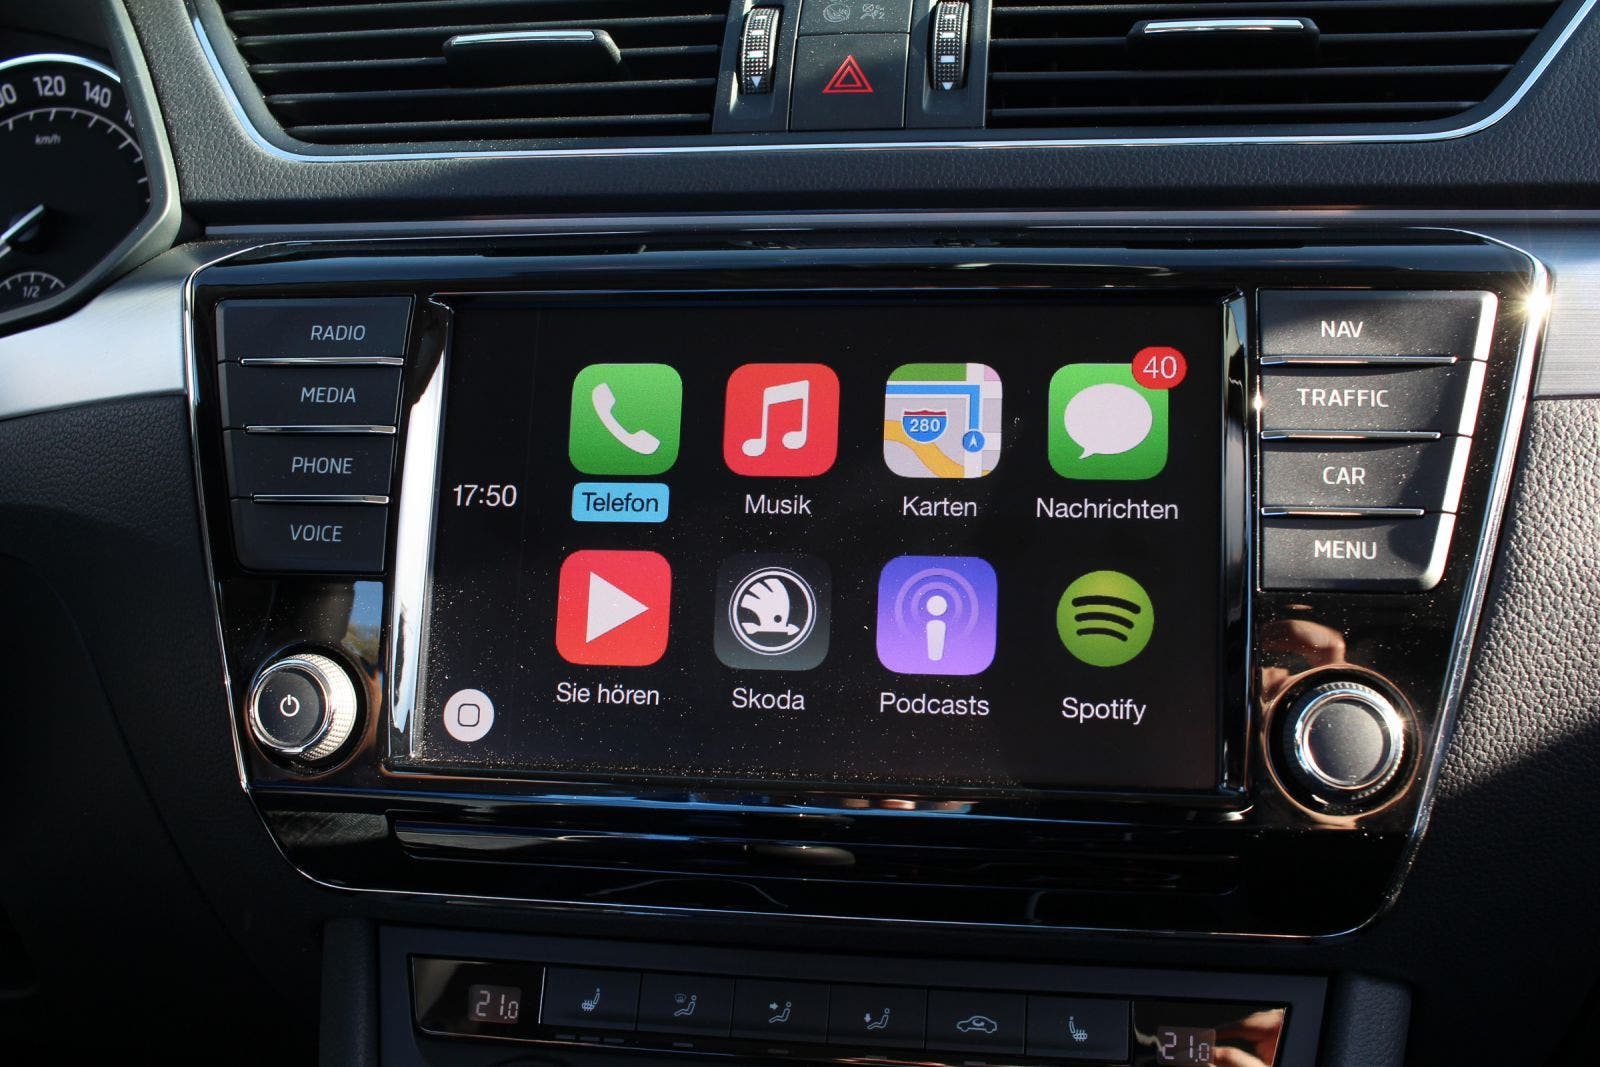 Apple-CarPlay-Skoda-Superb-Jens-Stratmann-6